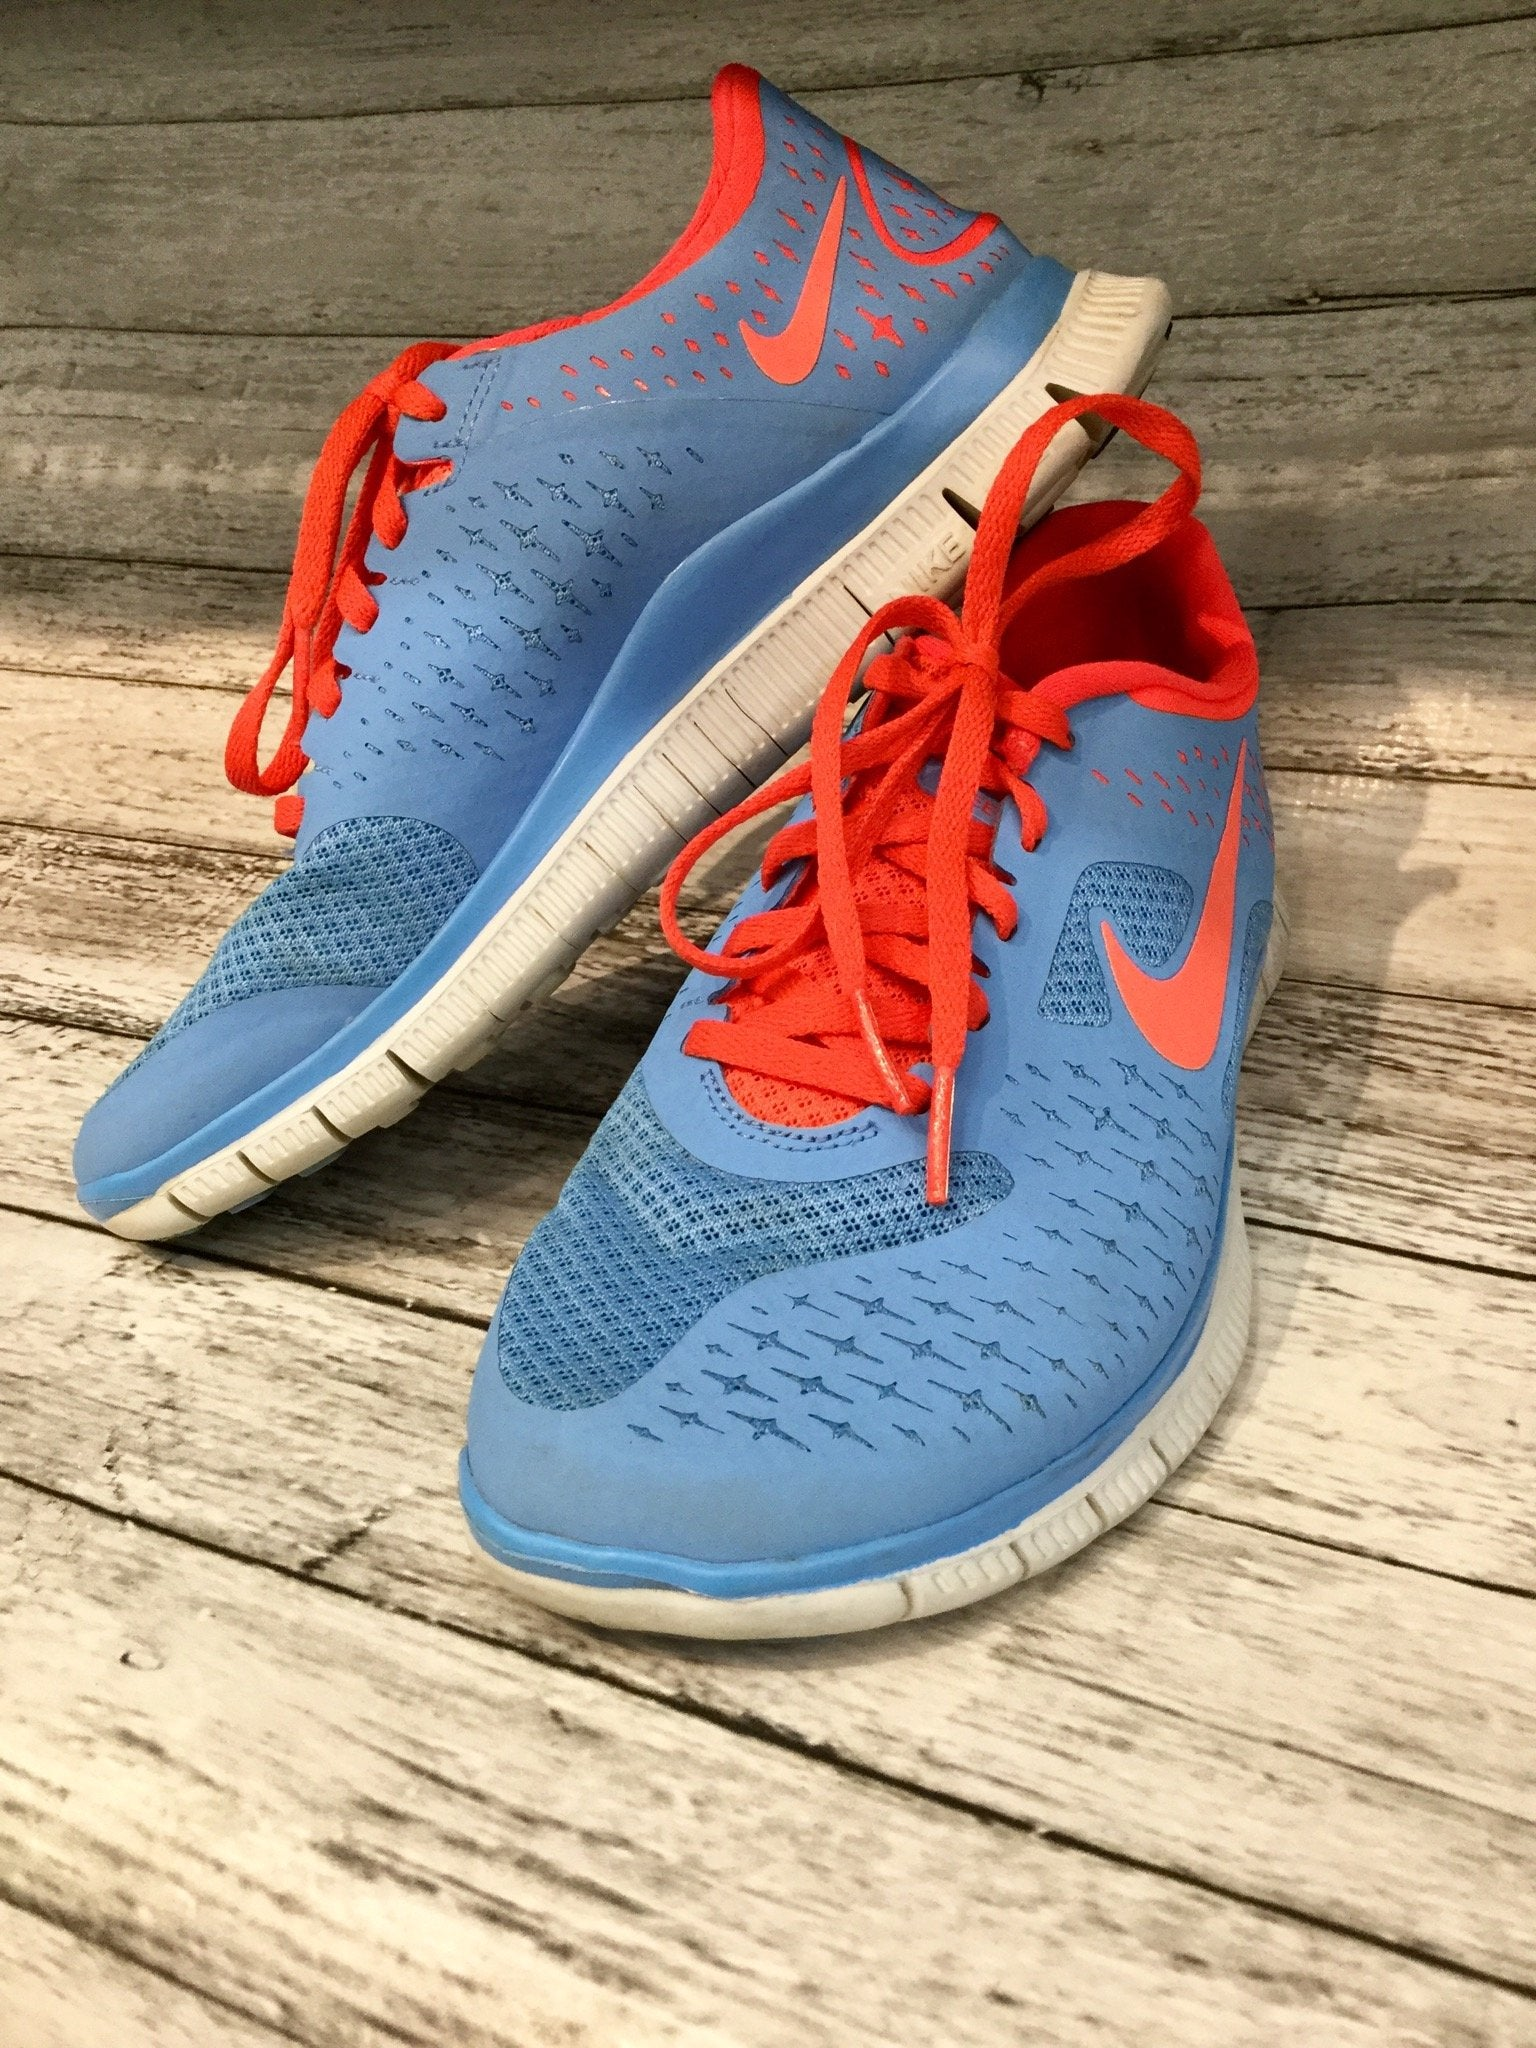 Primary Photo - brand: nike , style: shoes athletic , color: orange blue , size: 6.5 , sku: